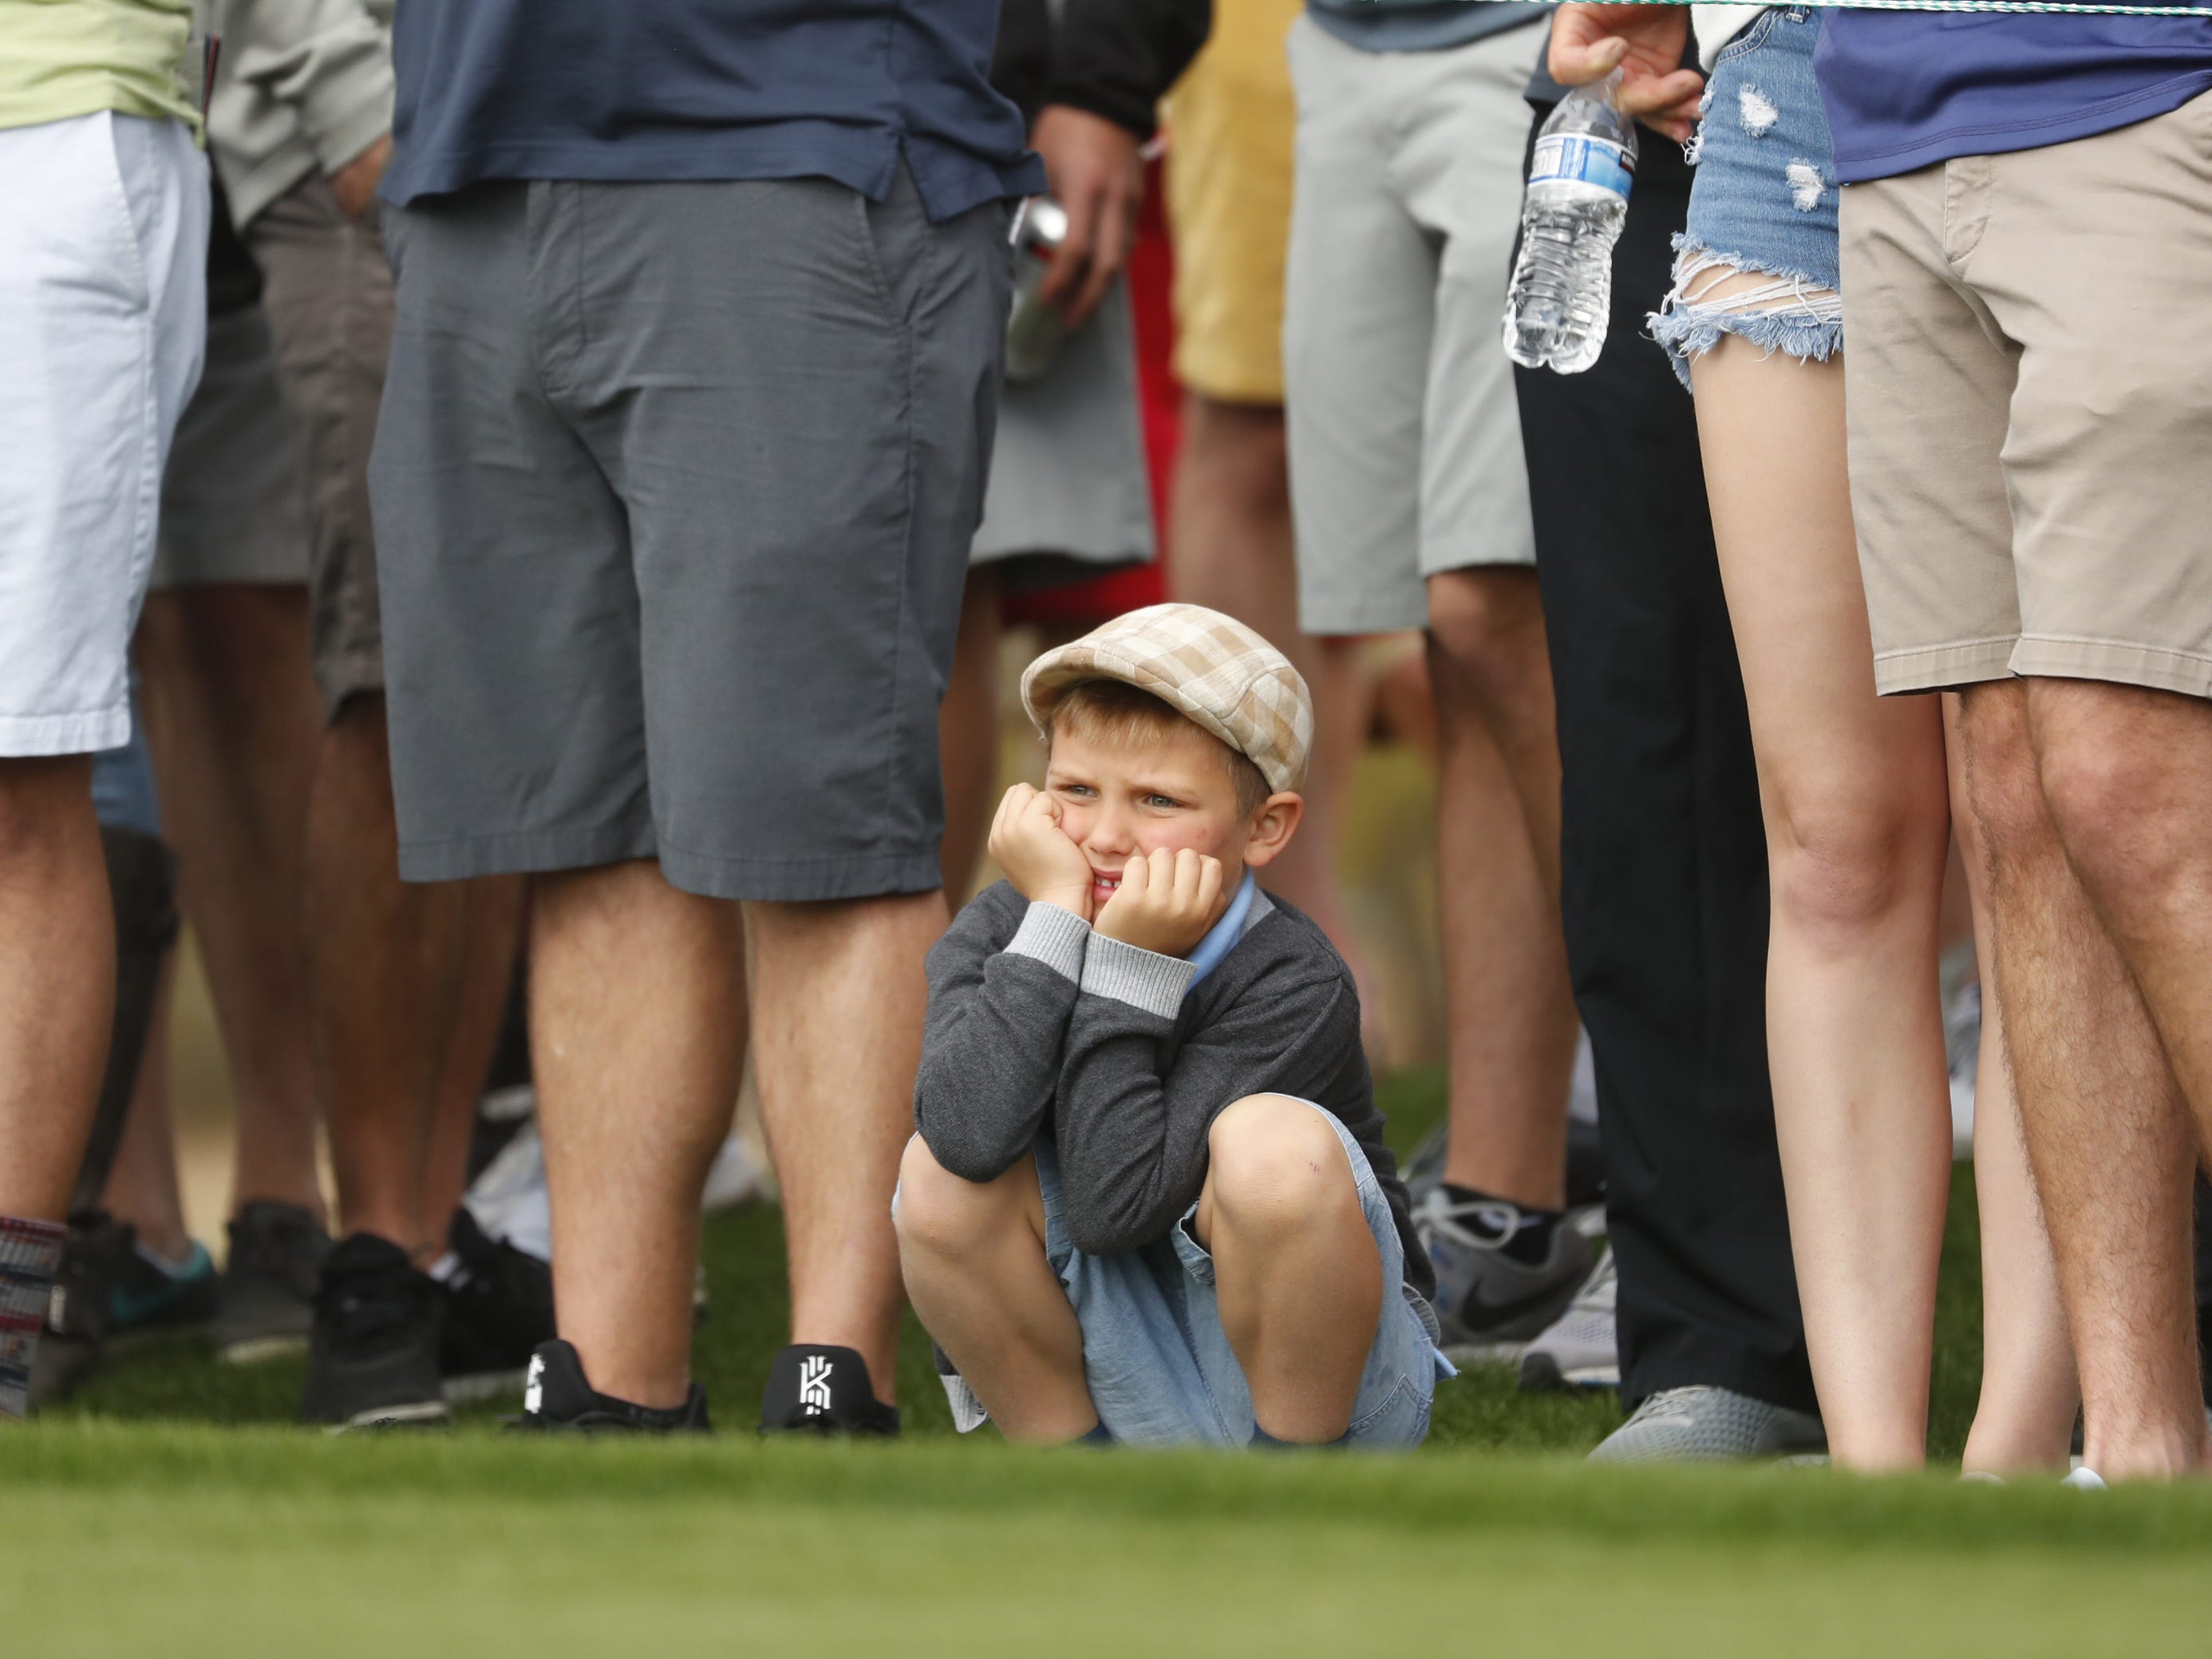 A child watches golfers tee off on the 8th hole during the third round of the Waste Management Phoenix Open at TPC Scottsdale in Scottsdale, Ariz. on February 2, 2019.